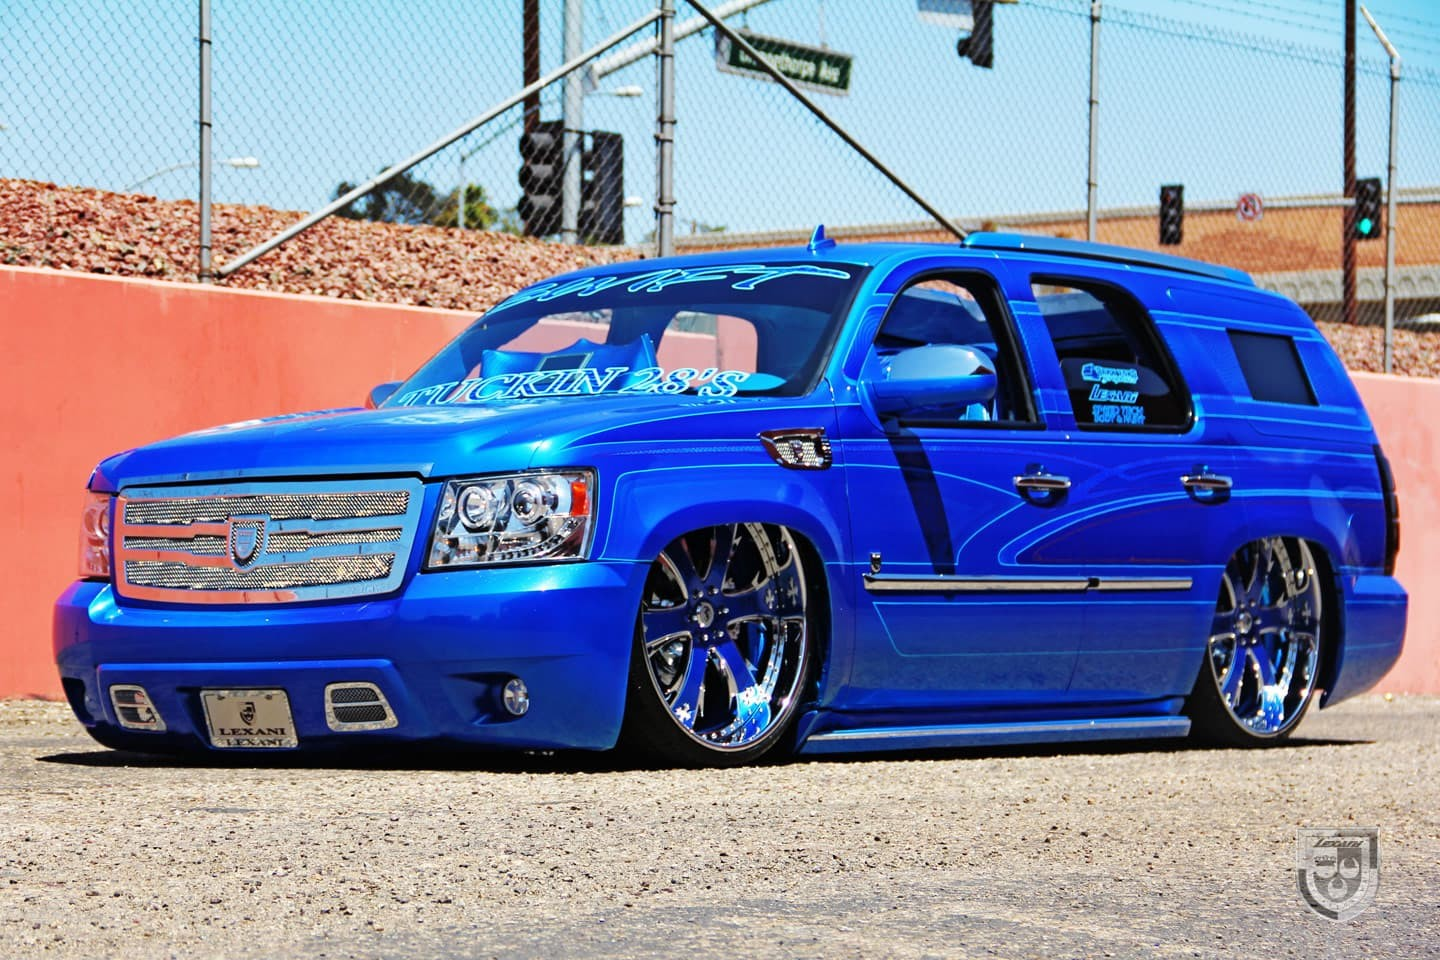 Blue 2010 Chevy Tahoe with 28